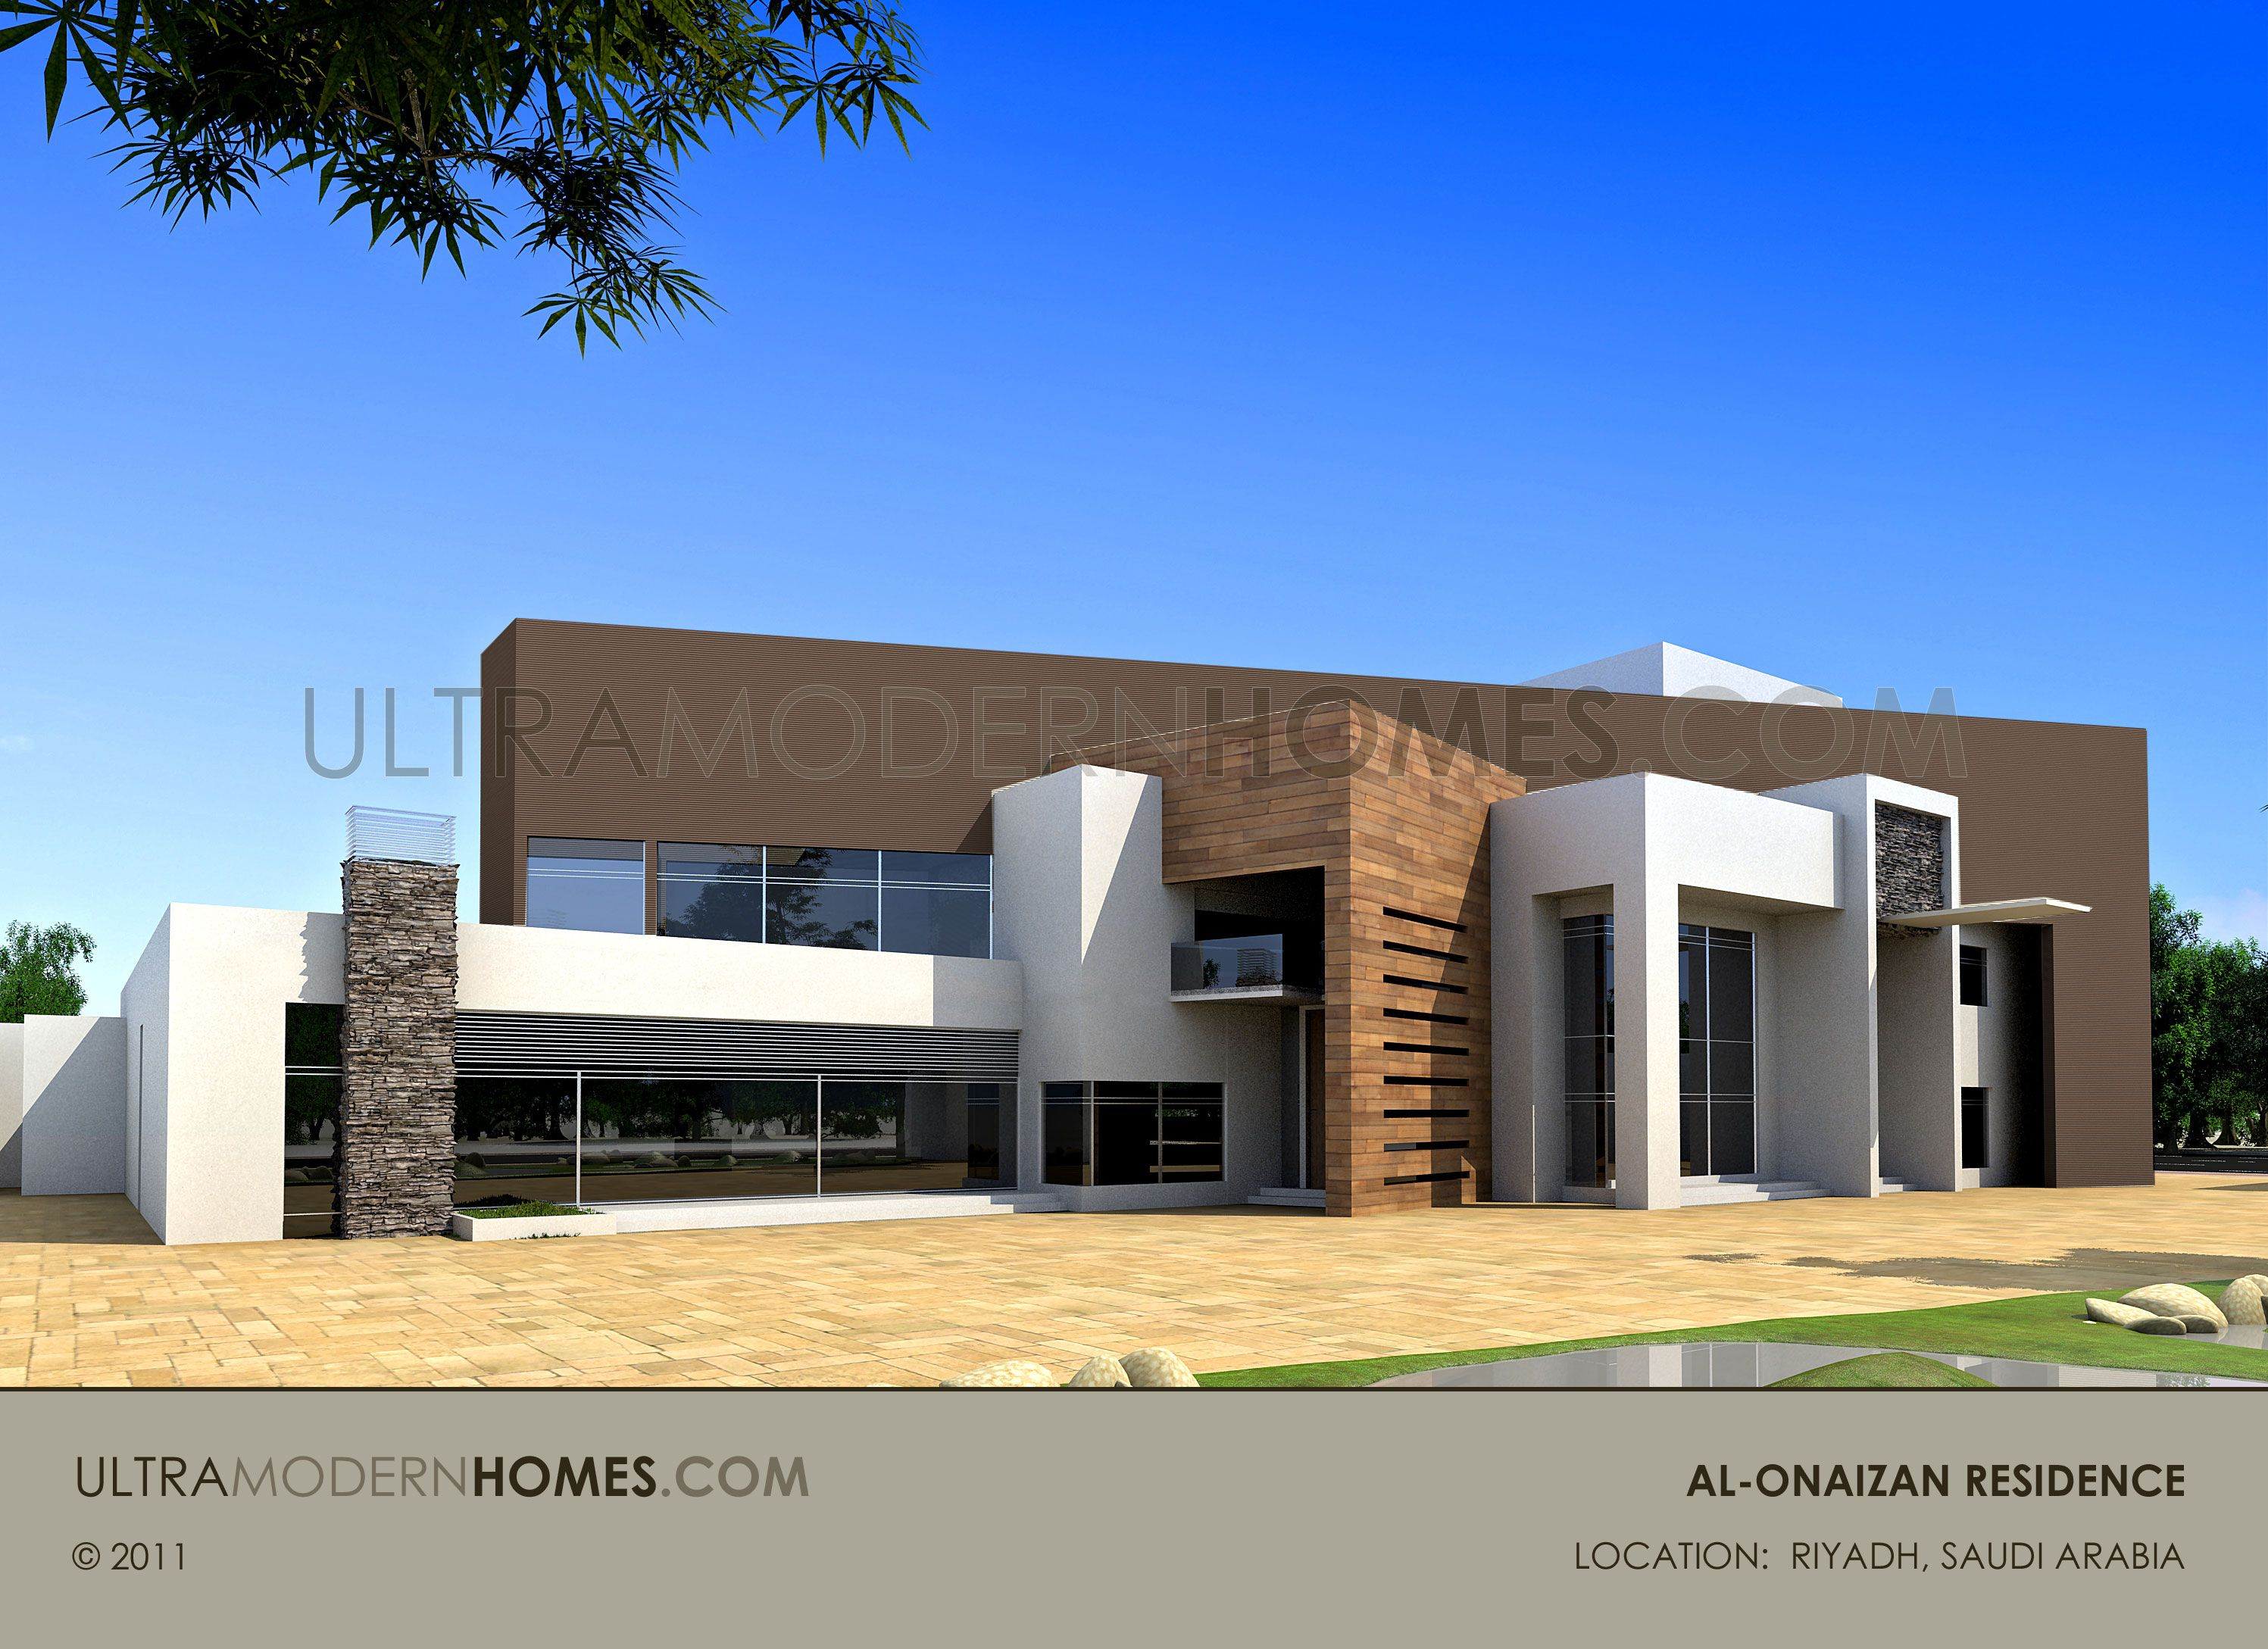 Luxury Ultra Modern Custom Home Design In Riyadh, Saudi Arabia, Designed By  Residential Architect